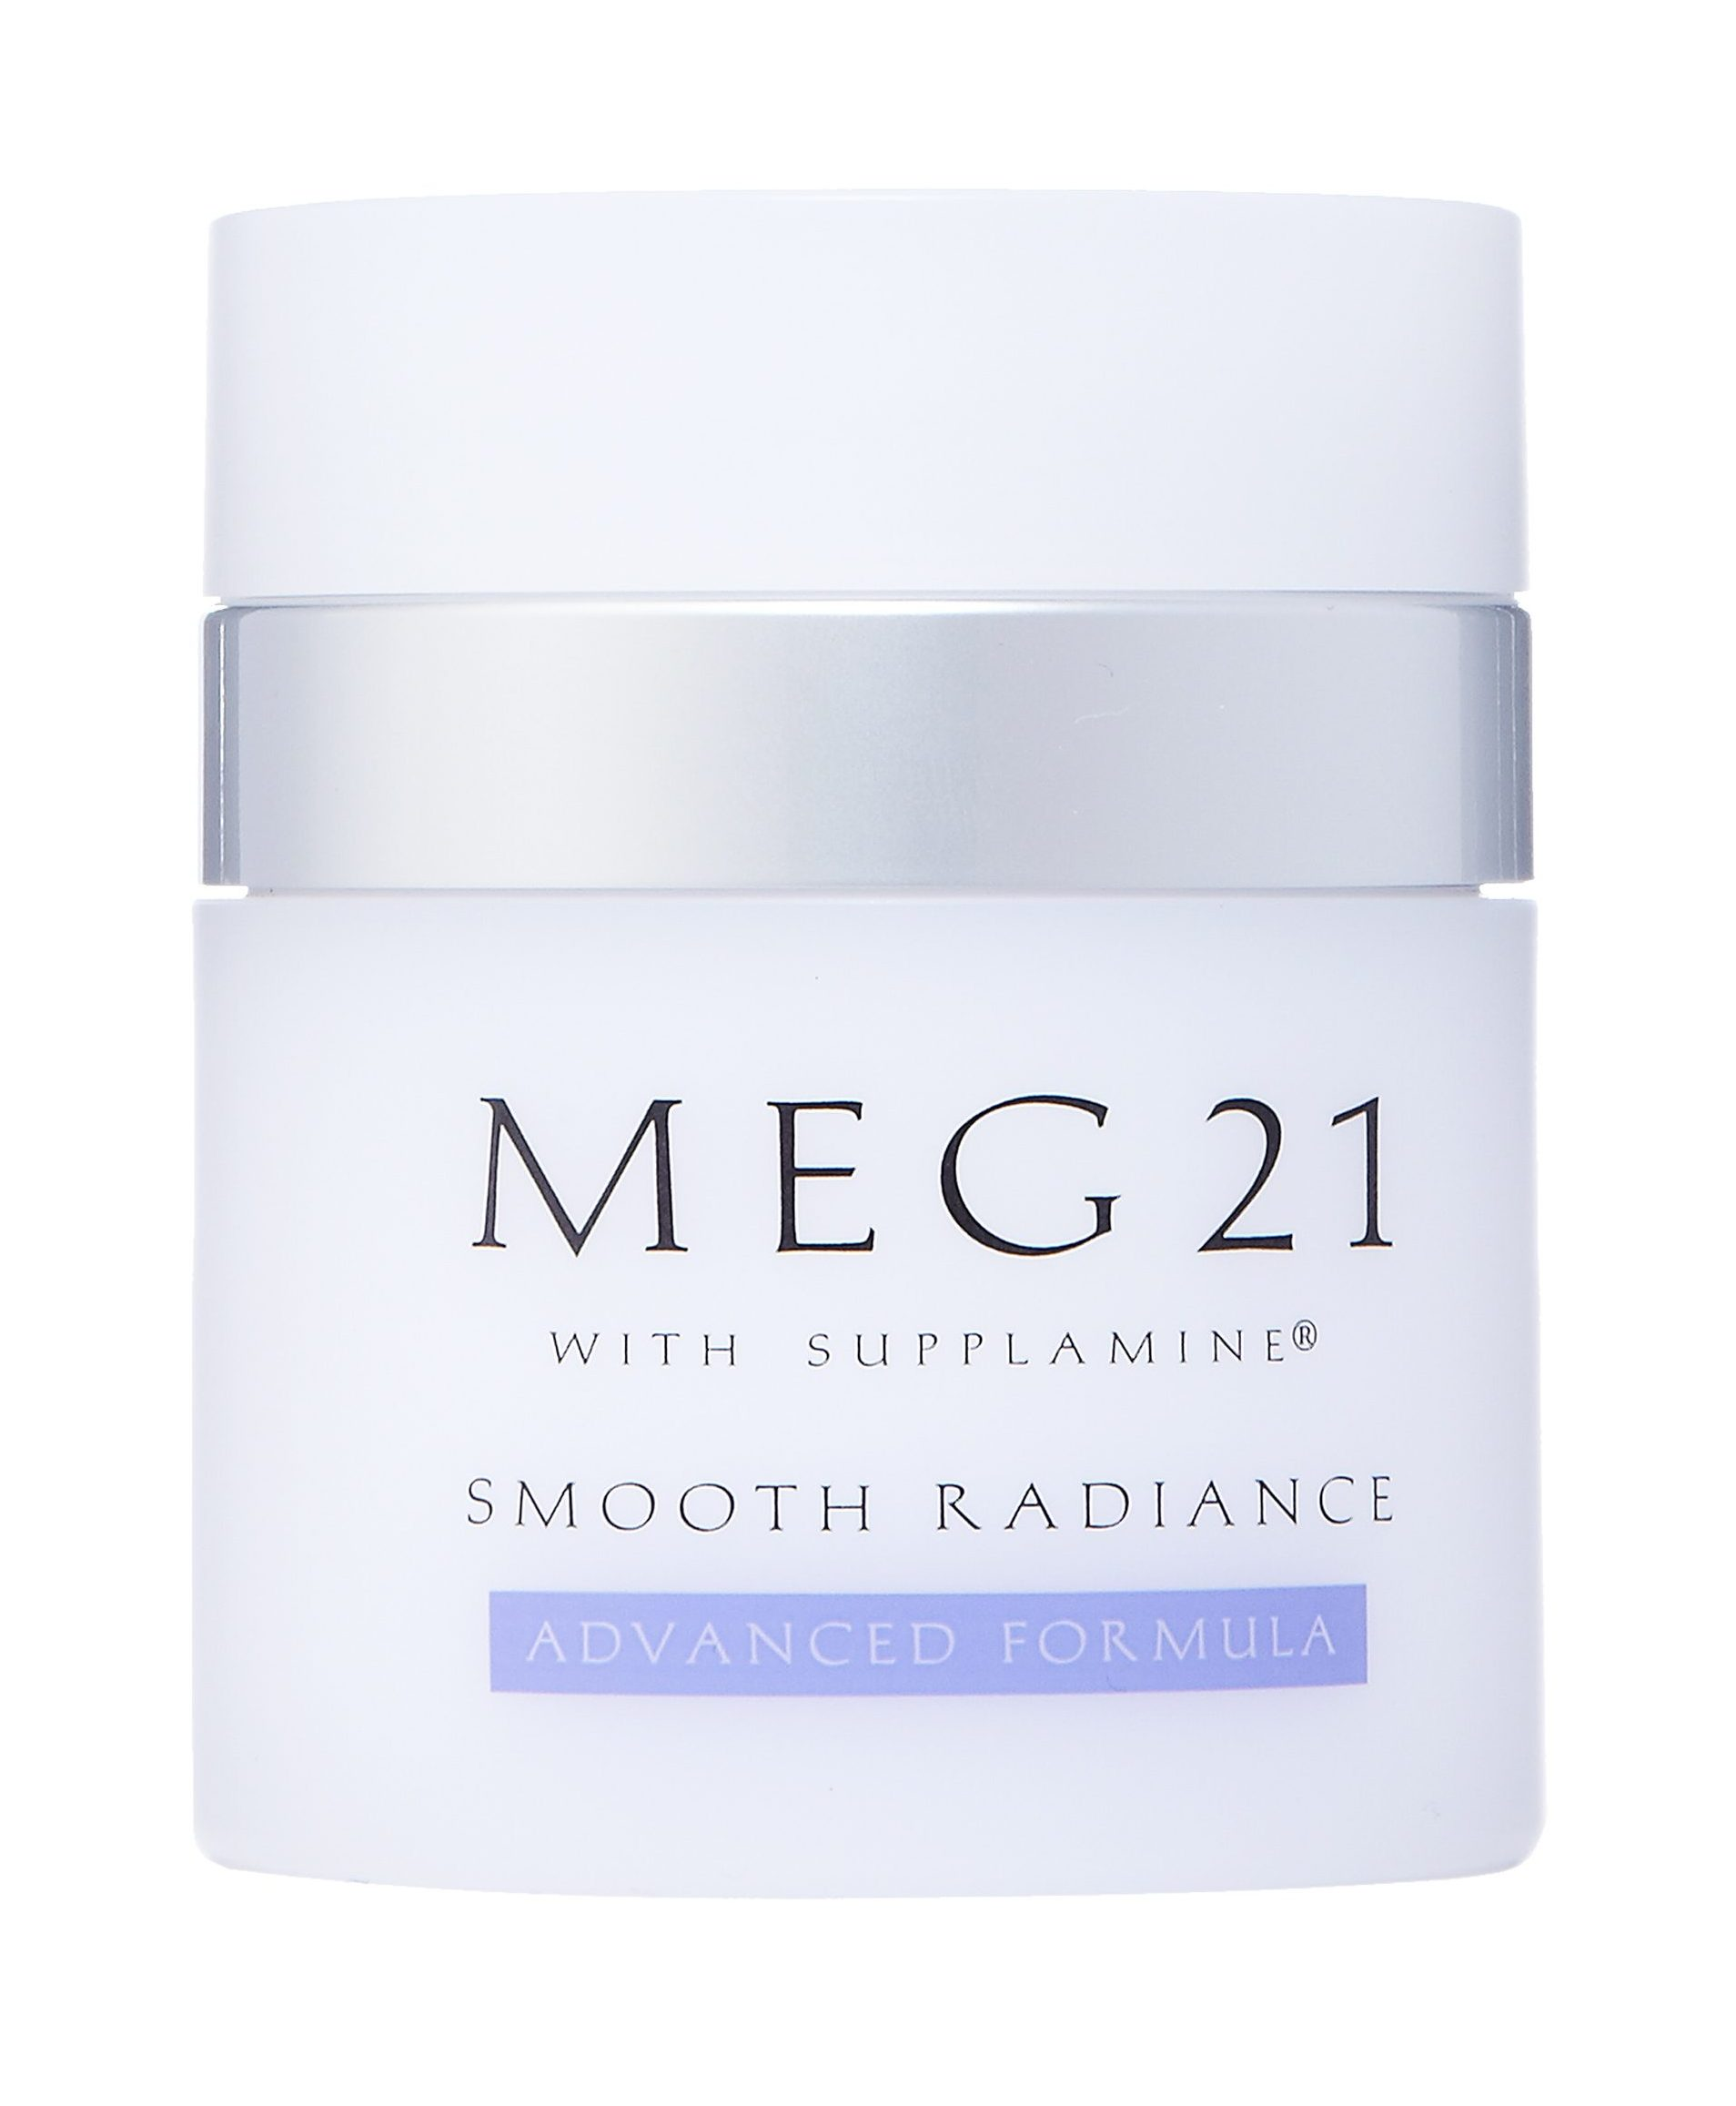 Dynamis Skin Science Meg 21 Advanced Formula